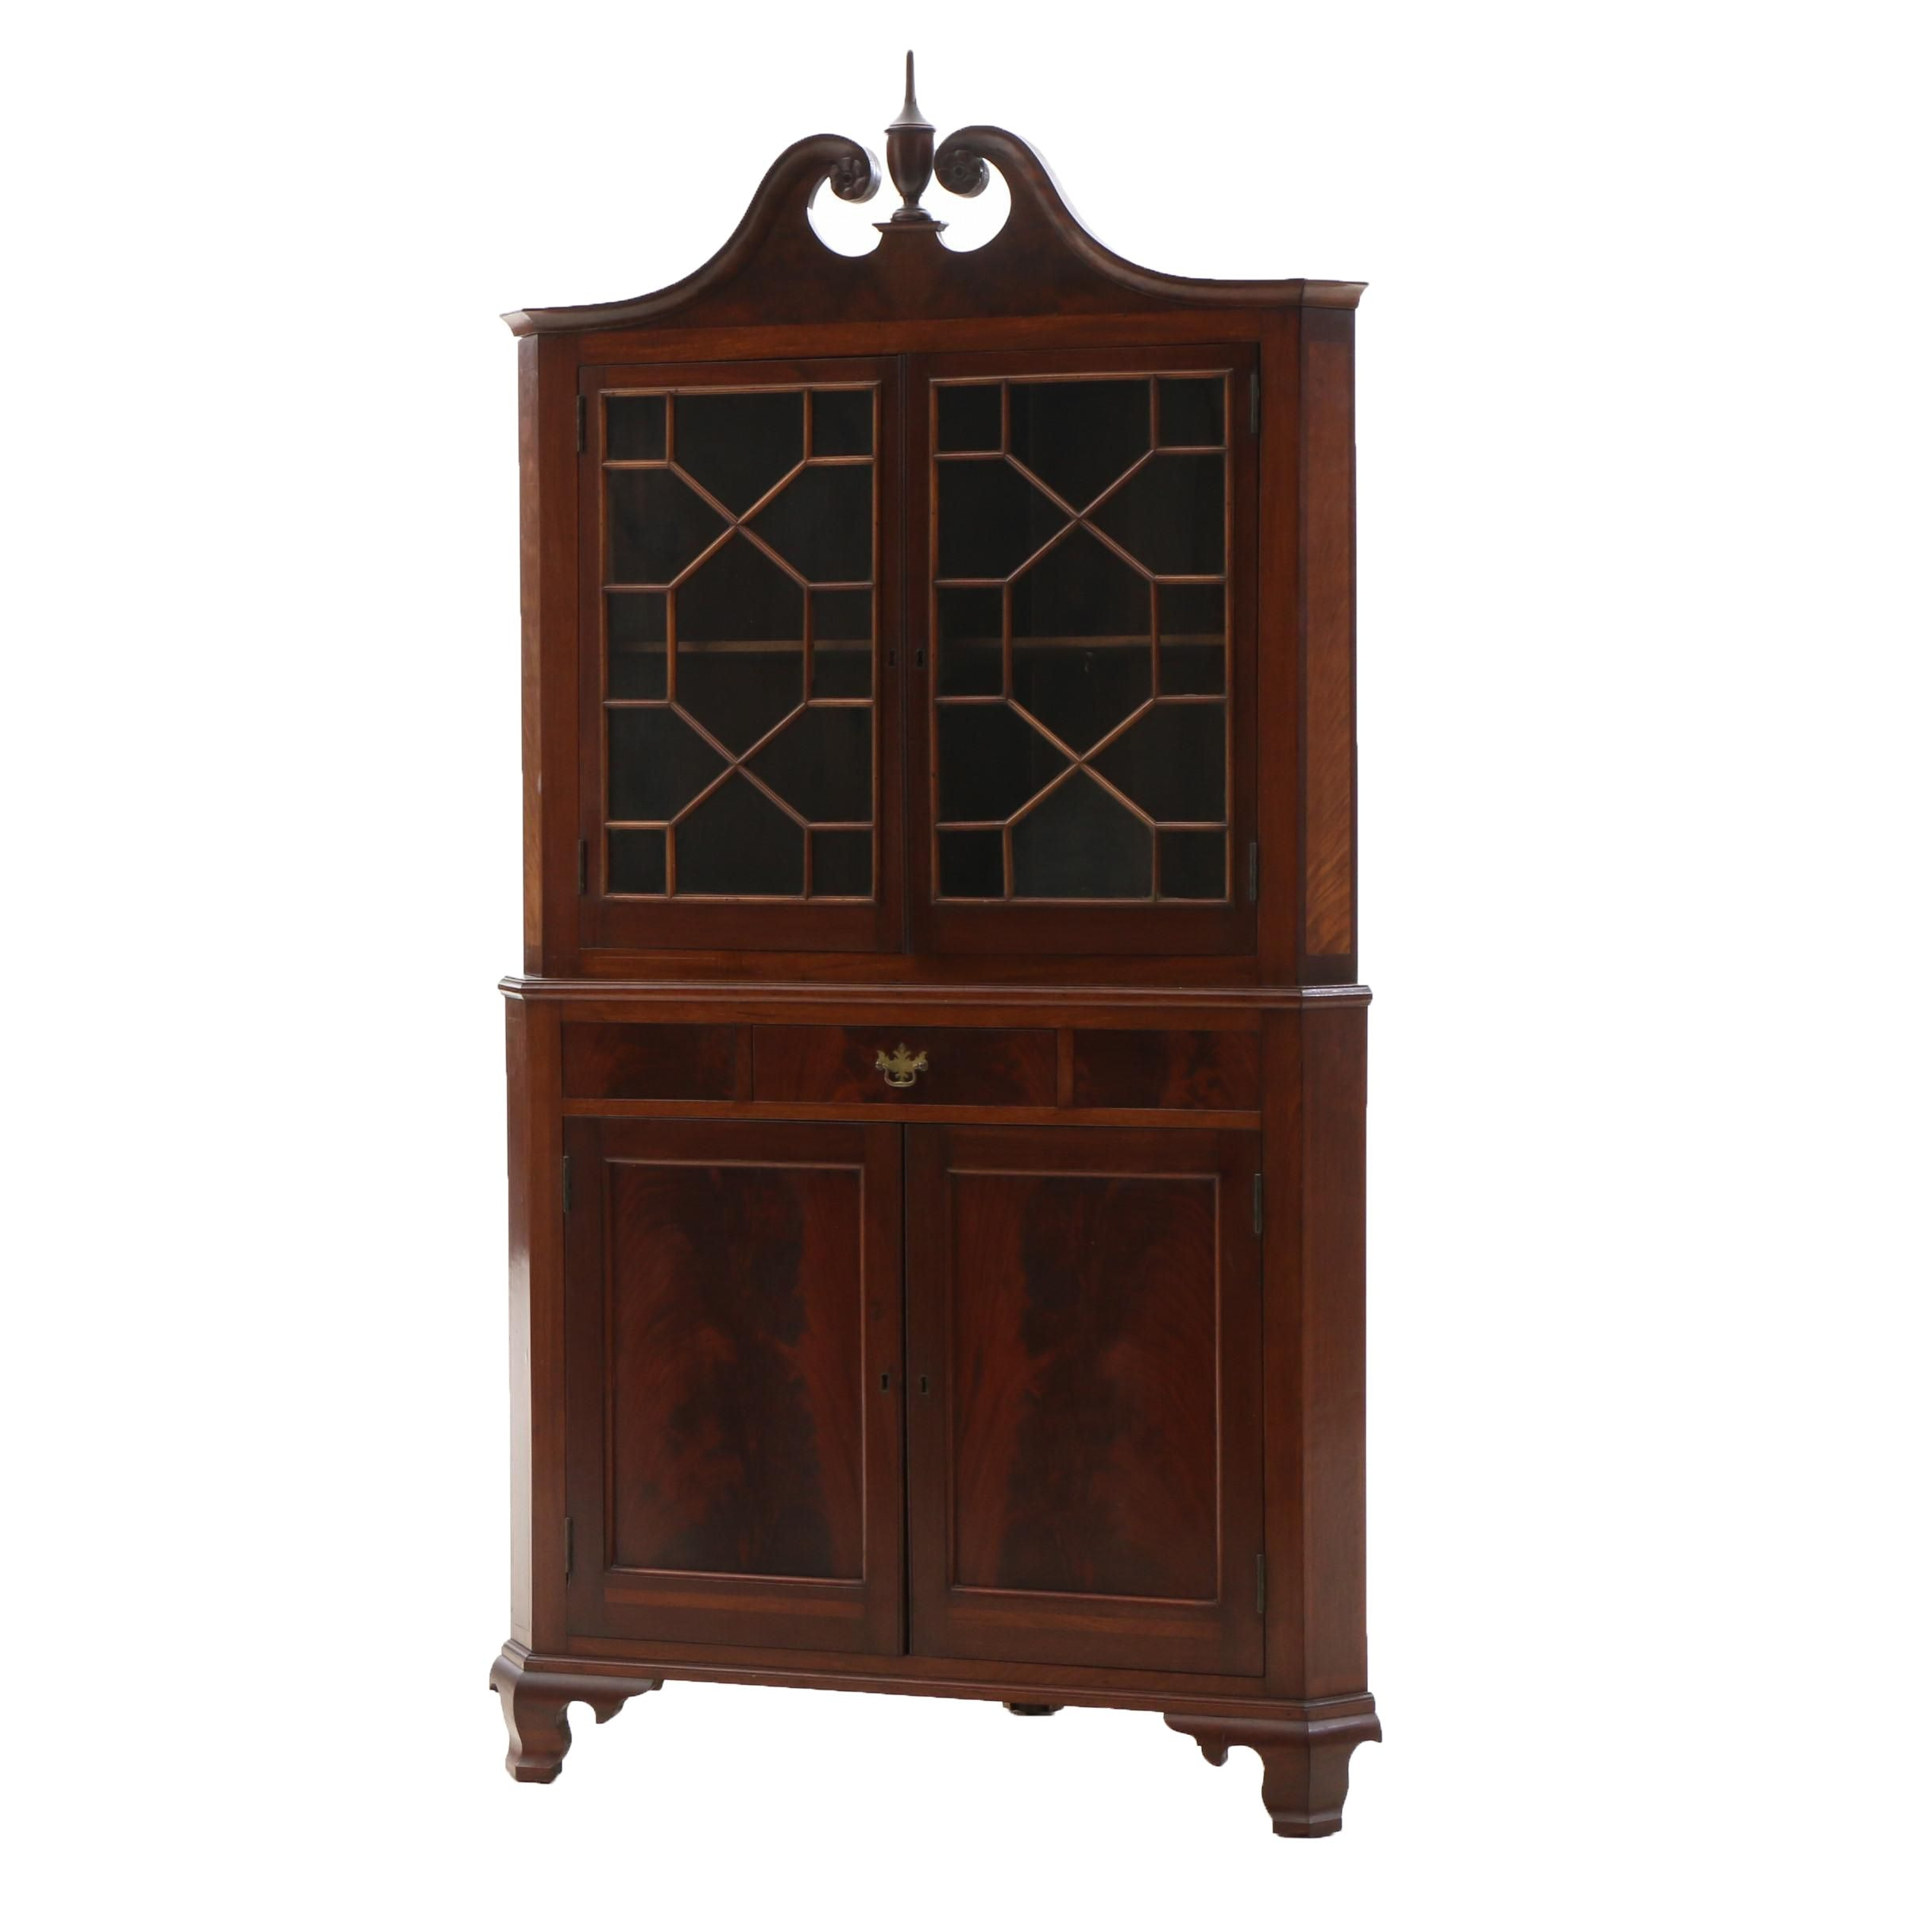 Chinese Chippendale Style Flame Mahogany China Cabinet